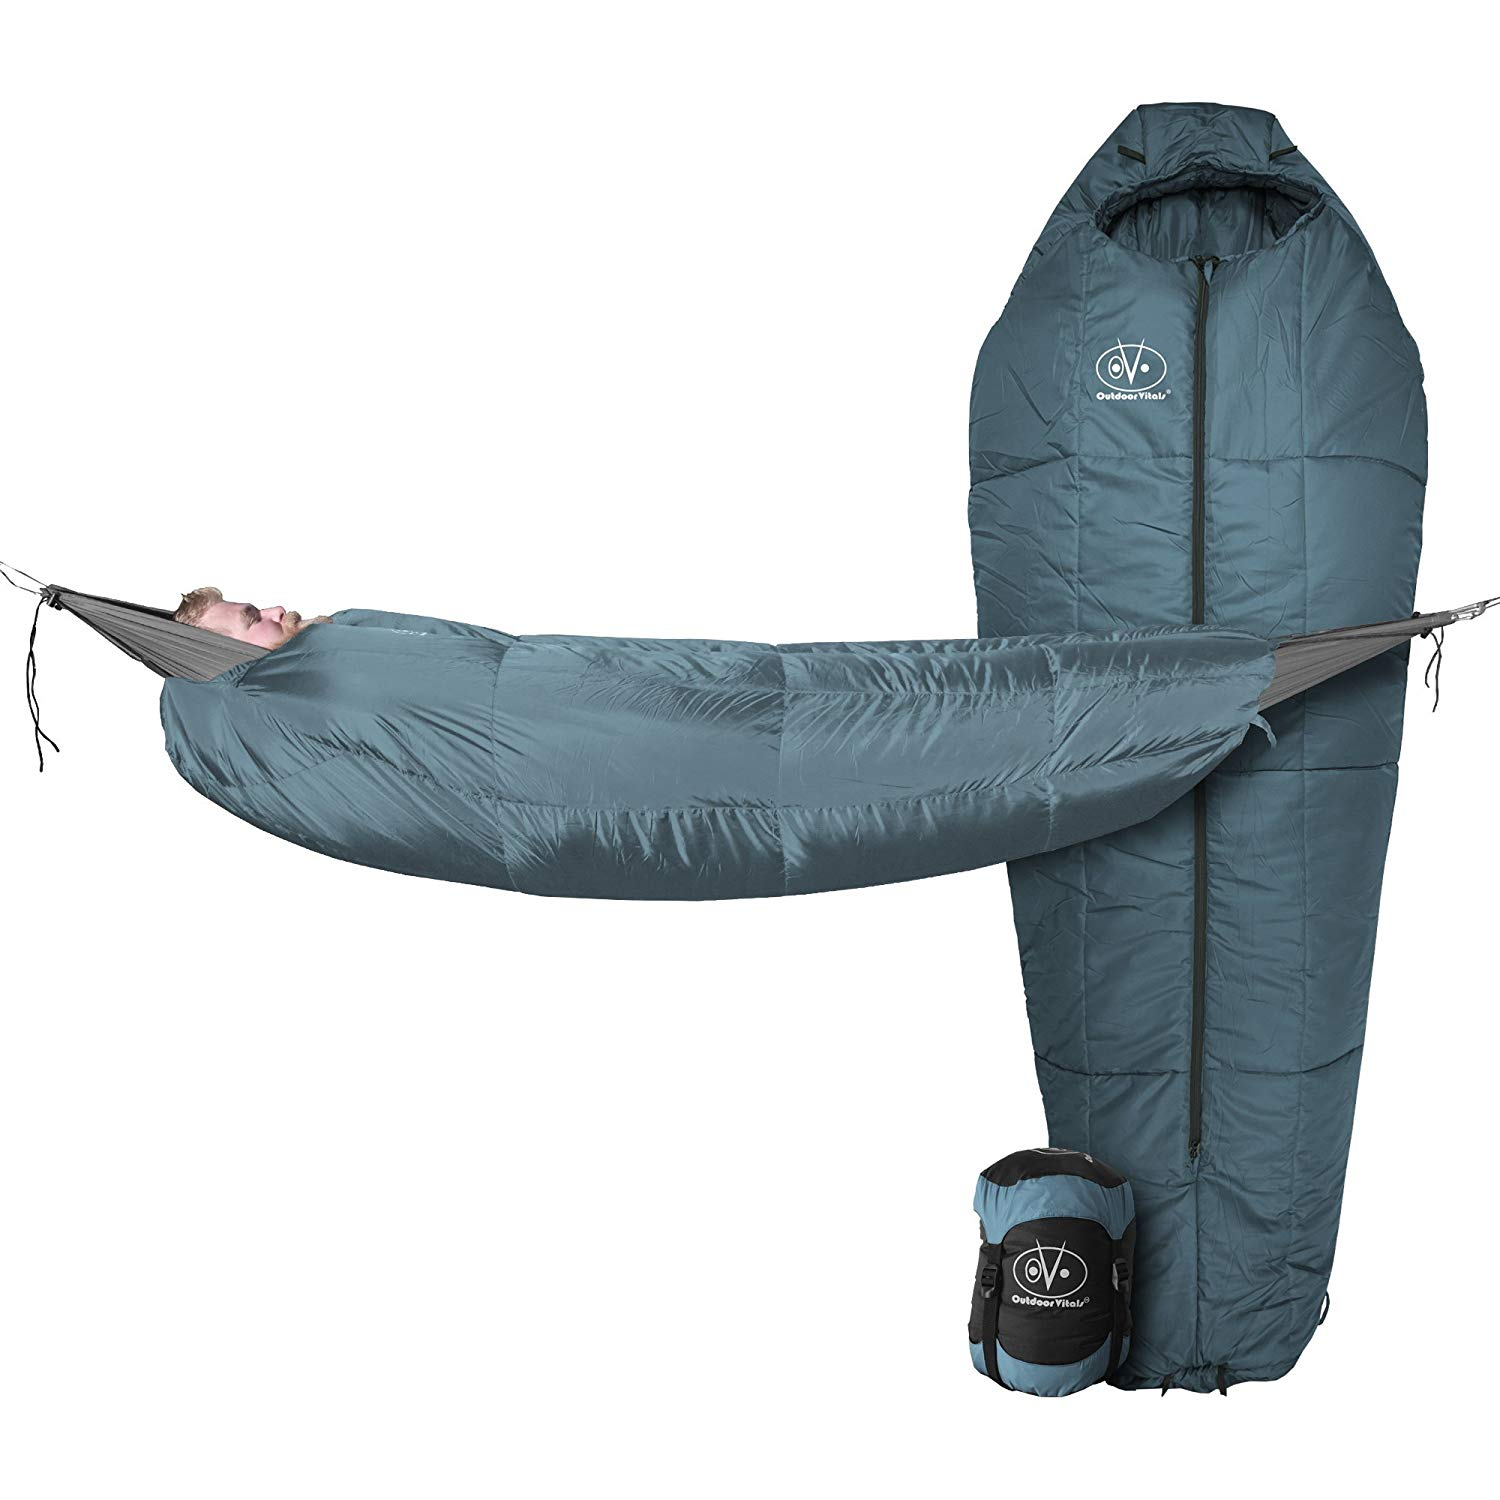 Outdoor Vitals Storm Light 30 Degree Mummy Pod Sleeping Bag | Eno underquilt